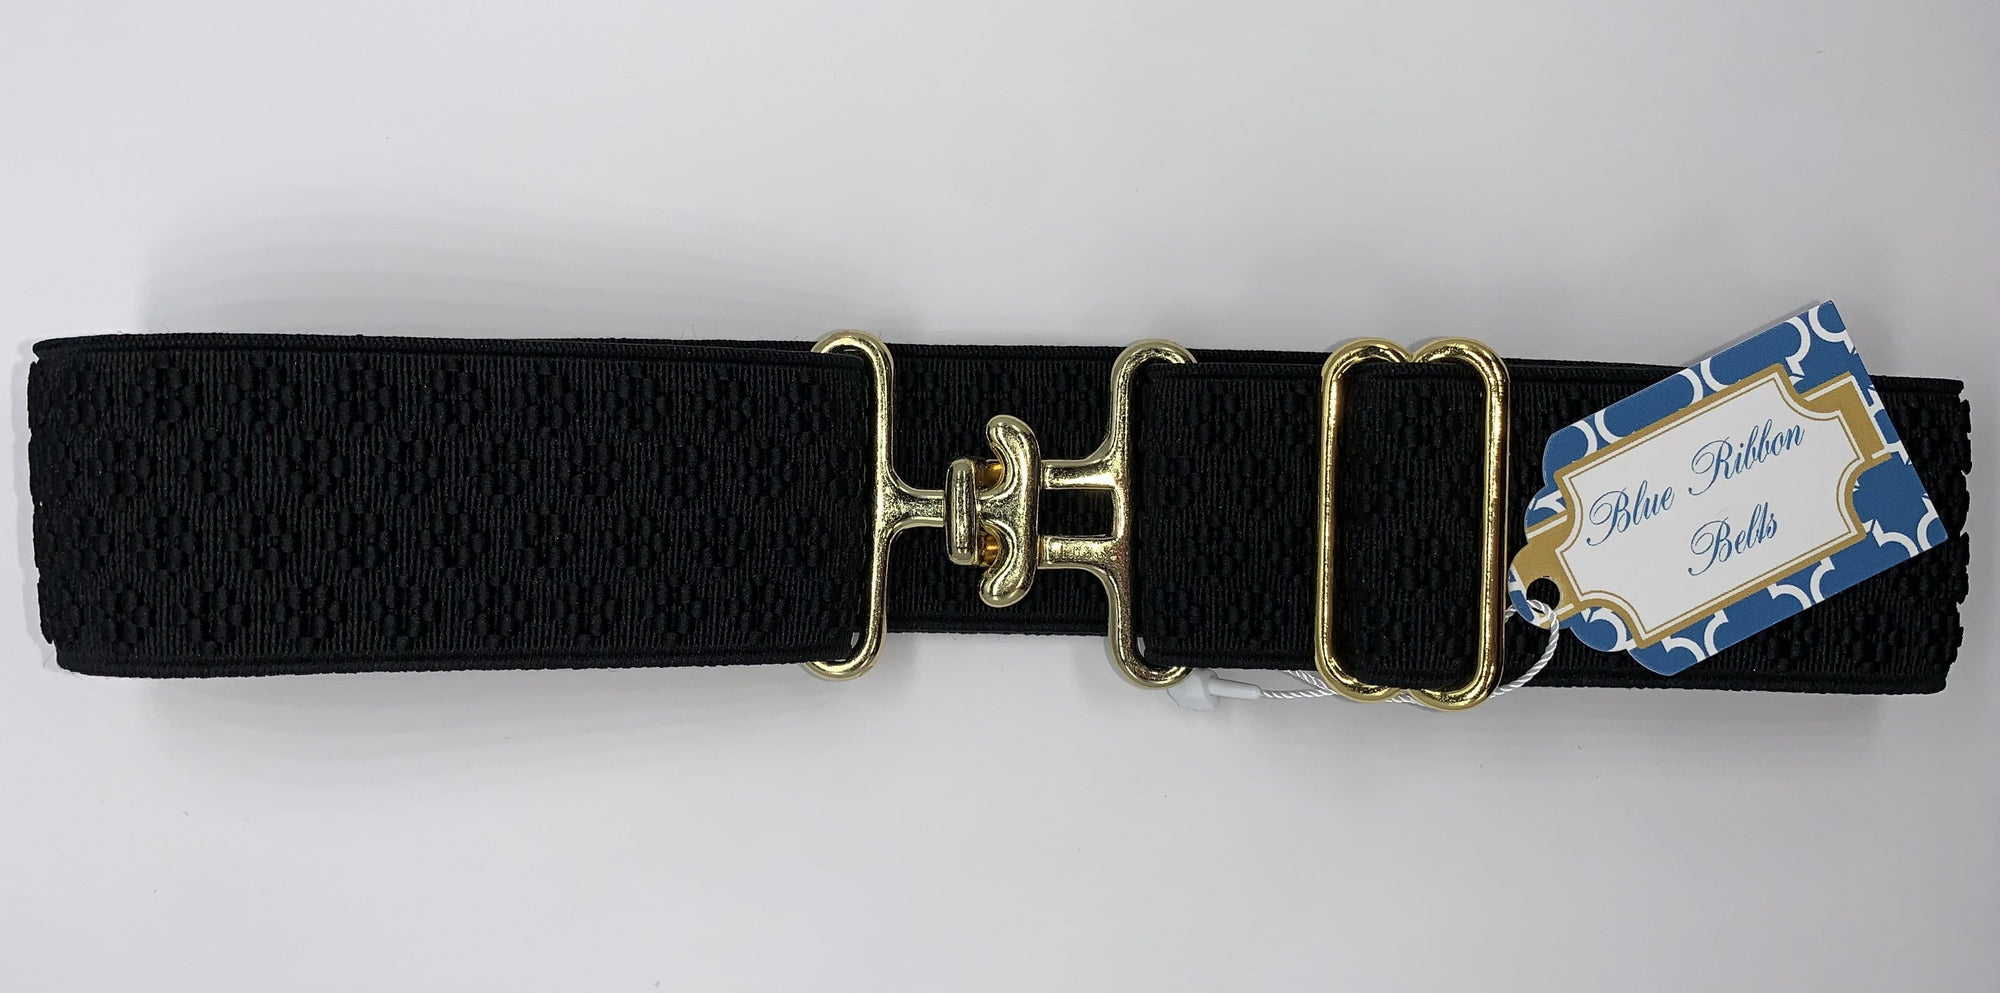 Blue Ribbon Belts Belt Black Flower Belt 1.5 Inch equestrian team apparel online tack store mobile tack store custom farm apparel custom show stable clothing equestrian lifestyle horse show clothing riding clothes horses equestrian tack store